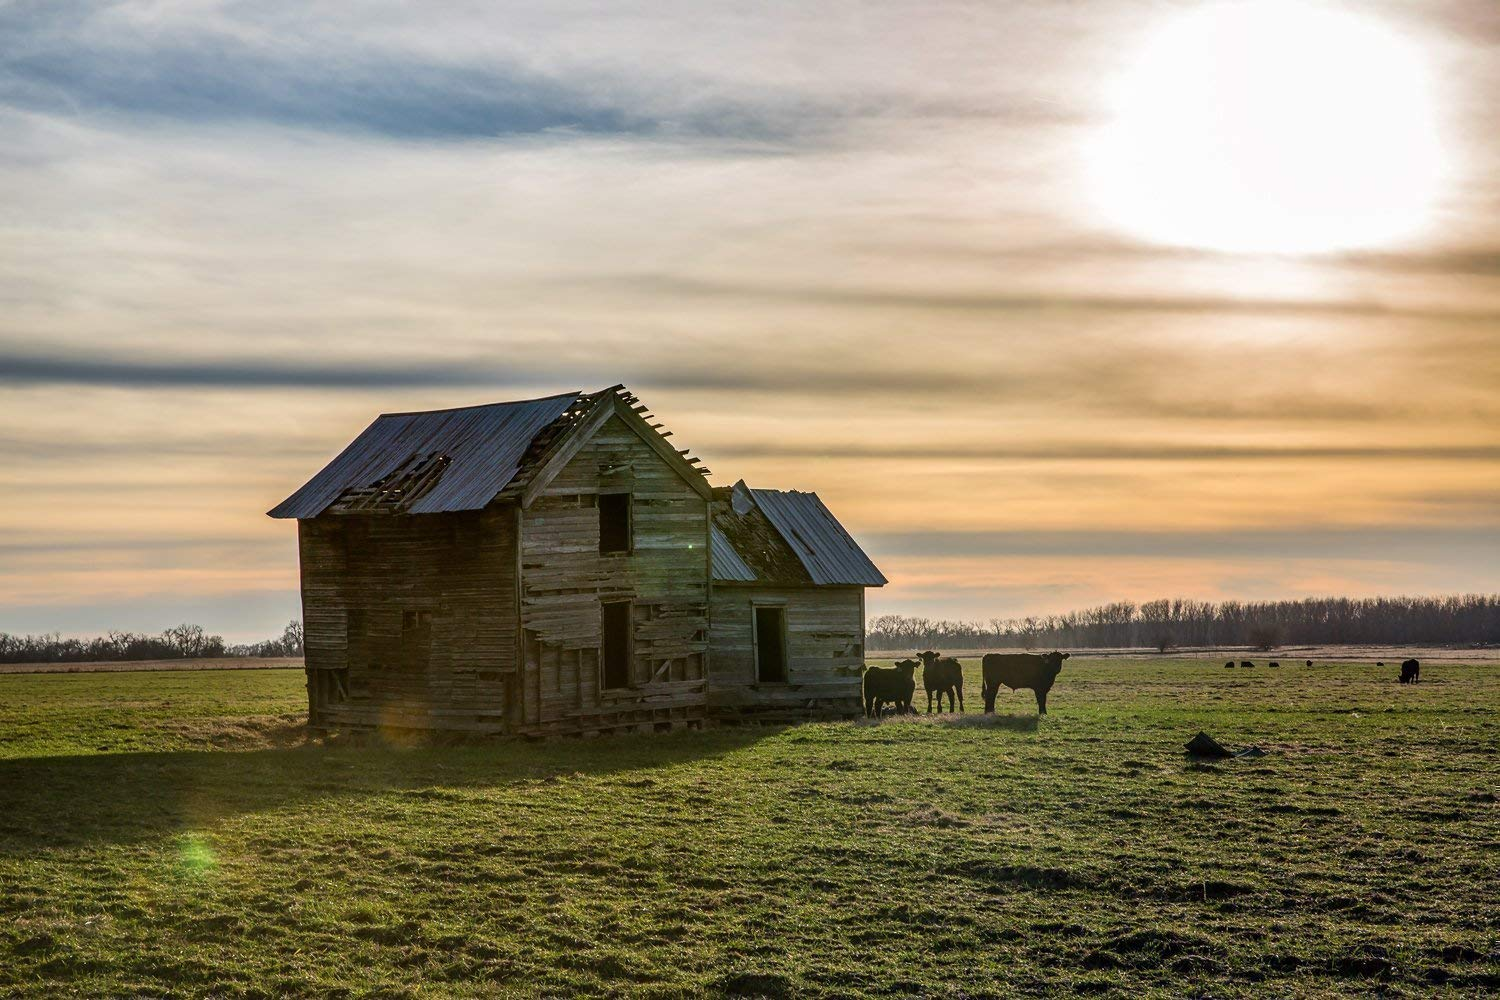 Rustic Country Photography Art Print - Picture of Old House in Field with Cows Standing Guard Vintage Style Decor Artwork for Home Decoration 5x7 to 30x45